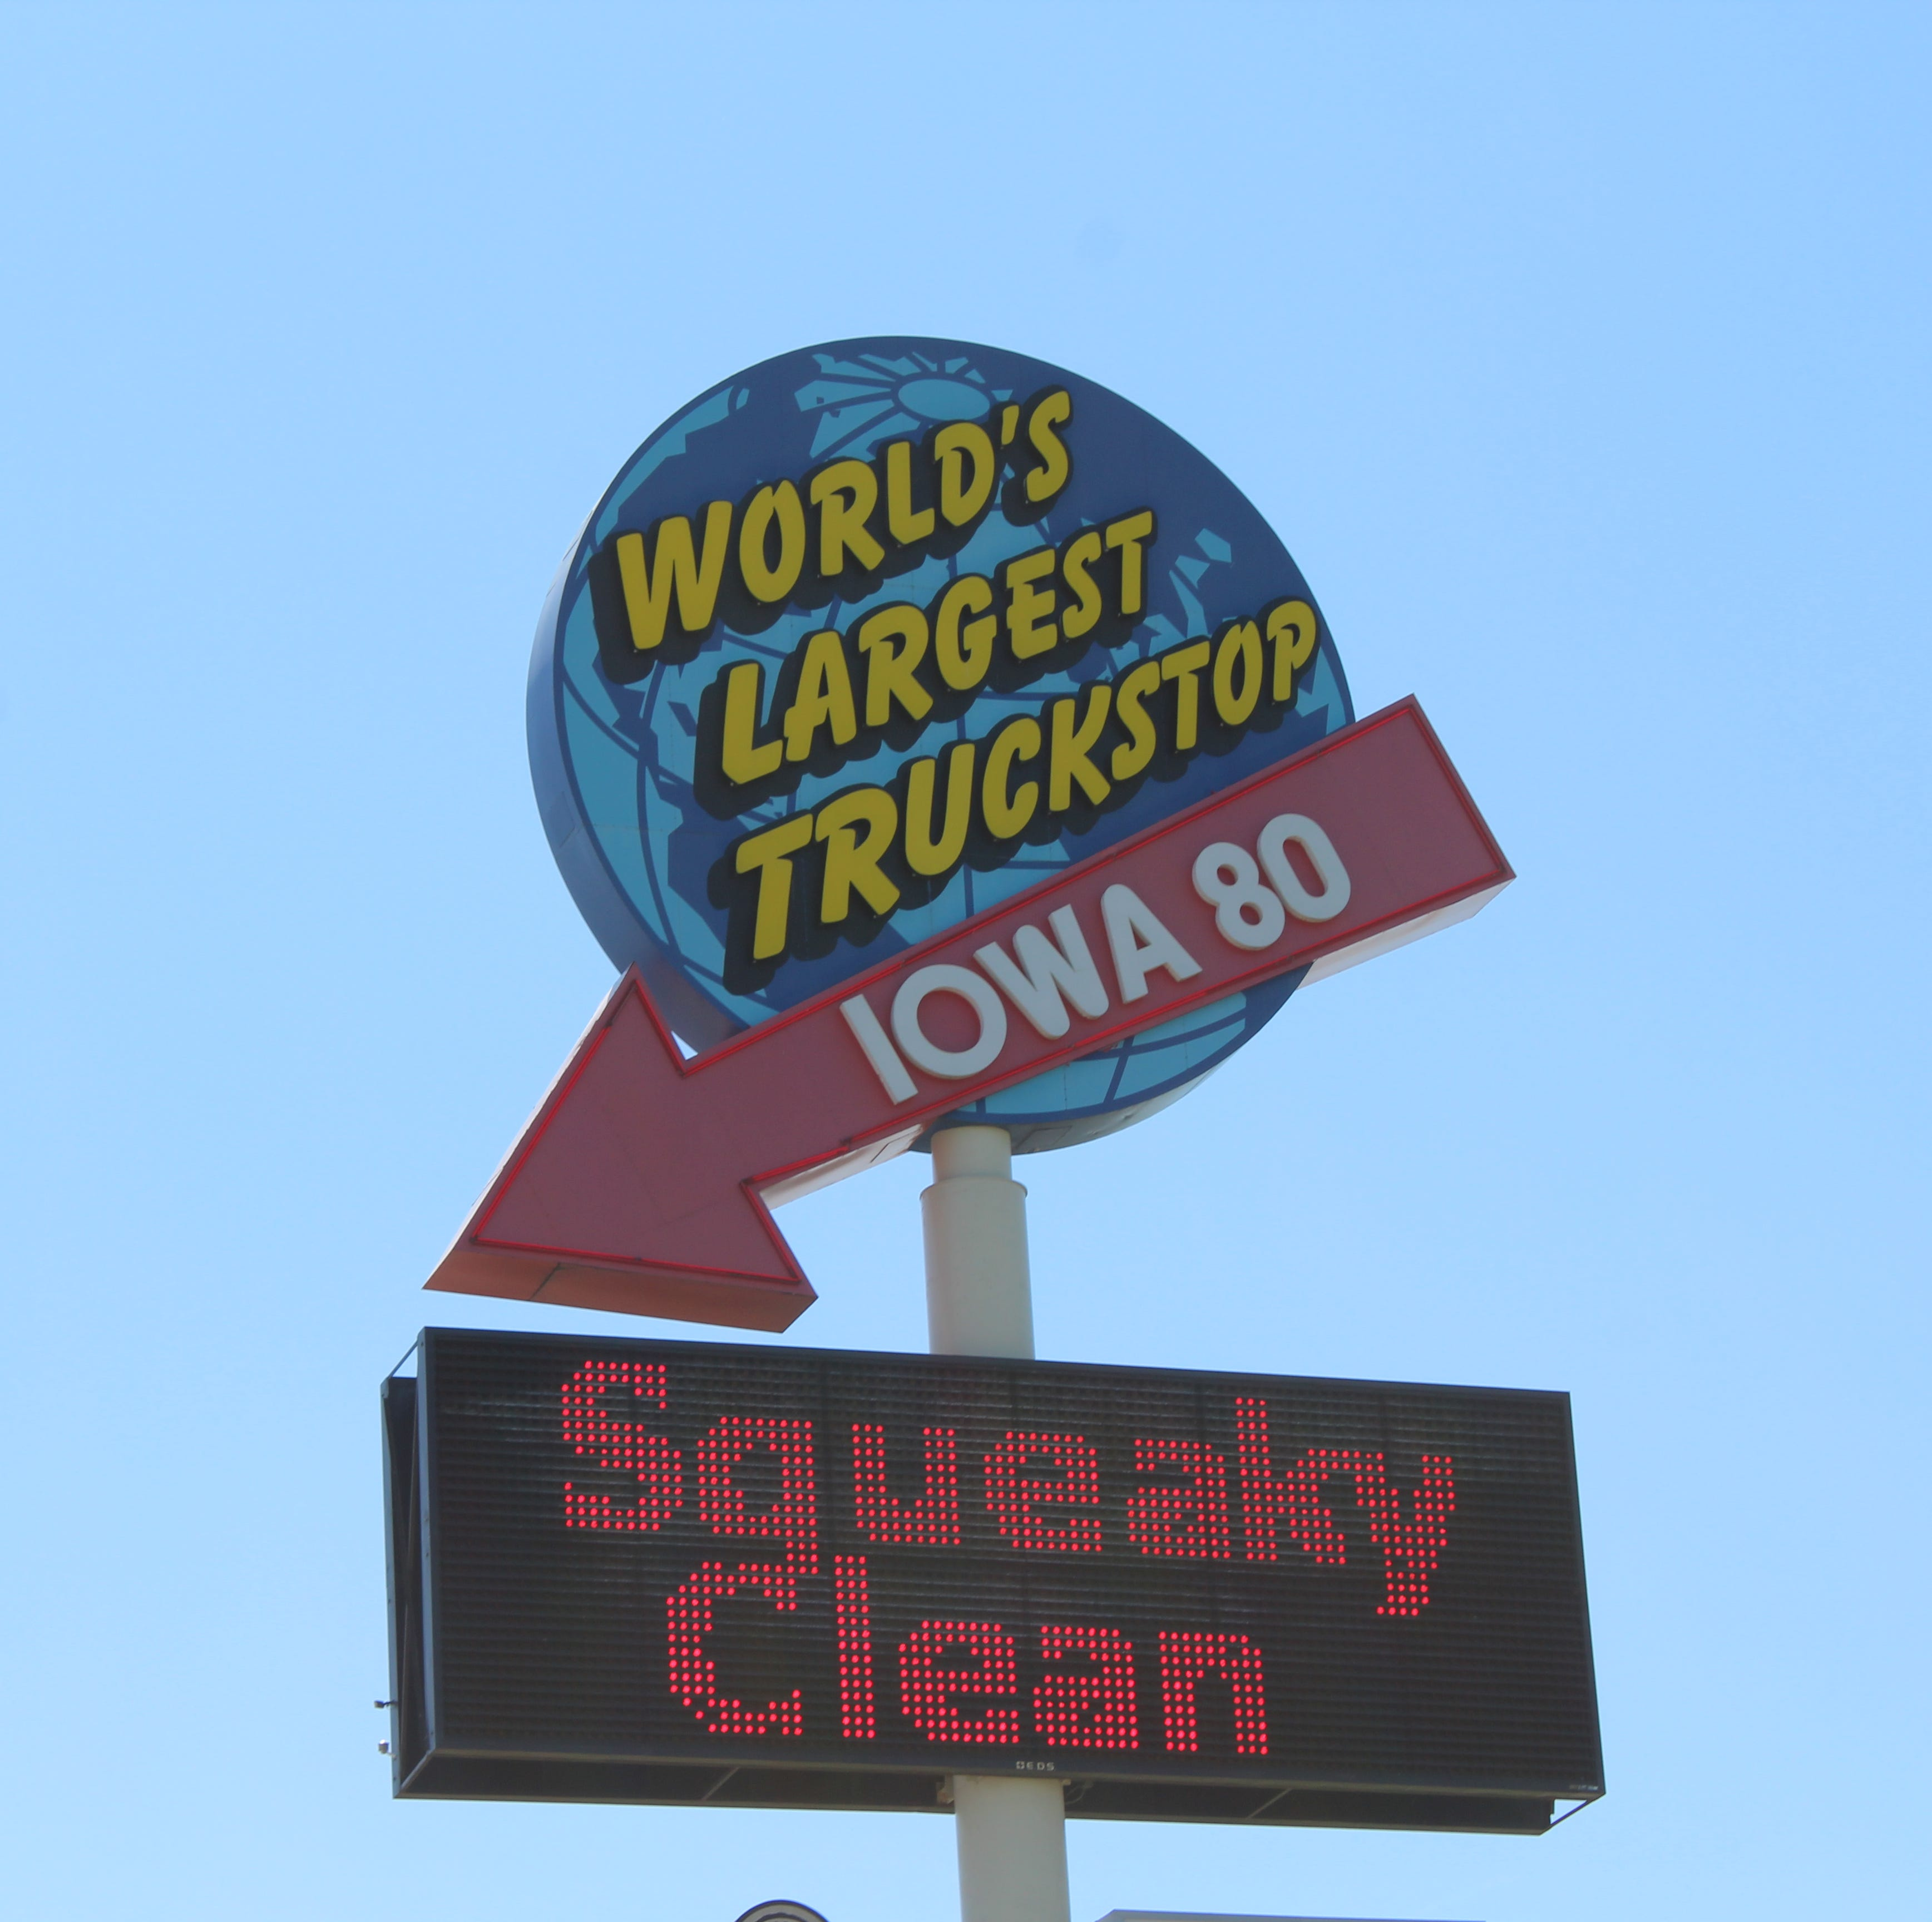 World's largest truck stop is an oasis in Iowa - halfway between New York and San Francisco